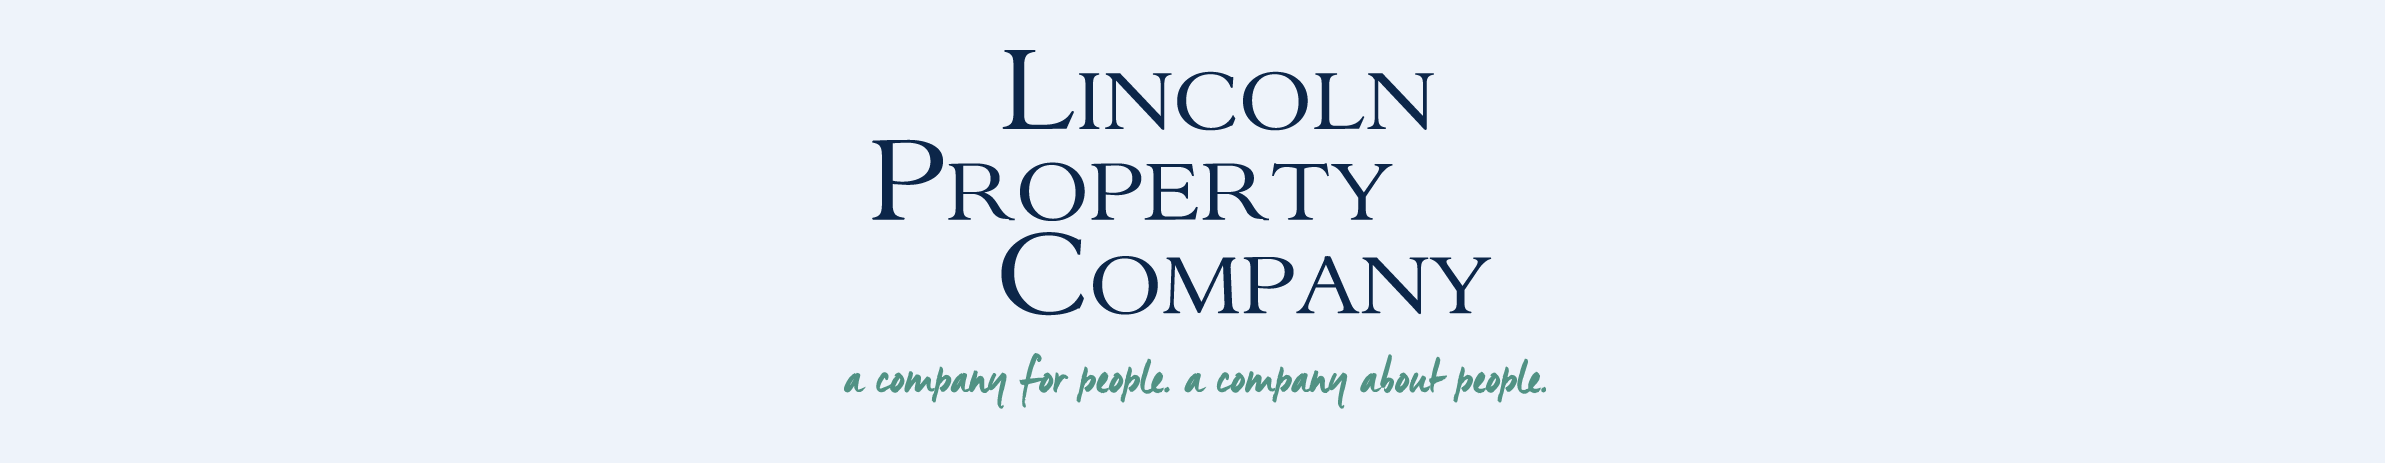 Lincoln Property Company Awarded Management Company of the Year